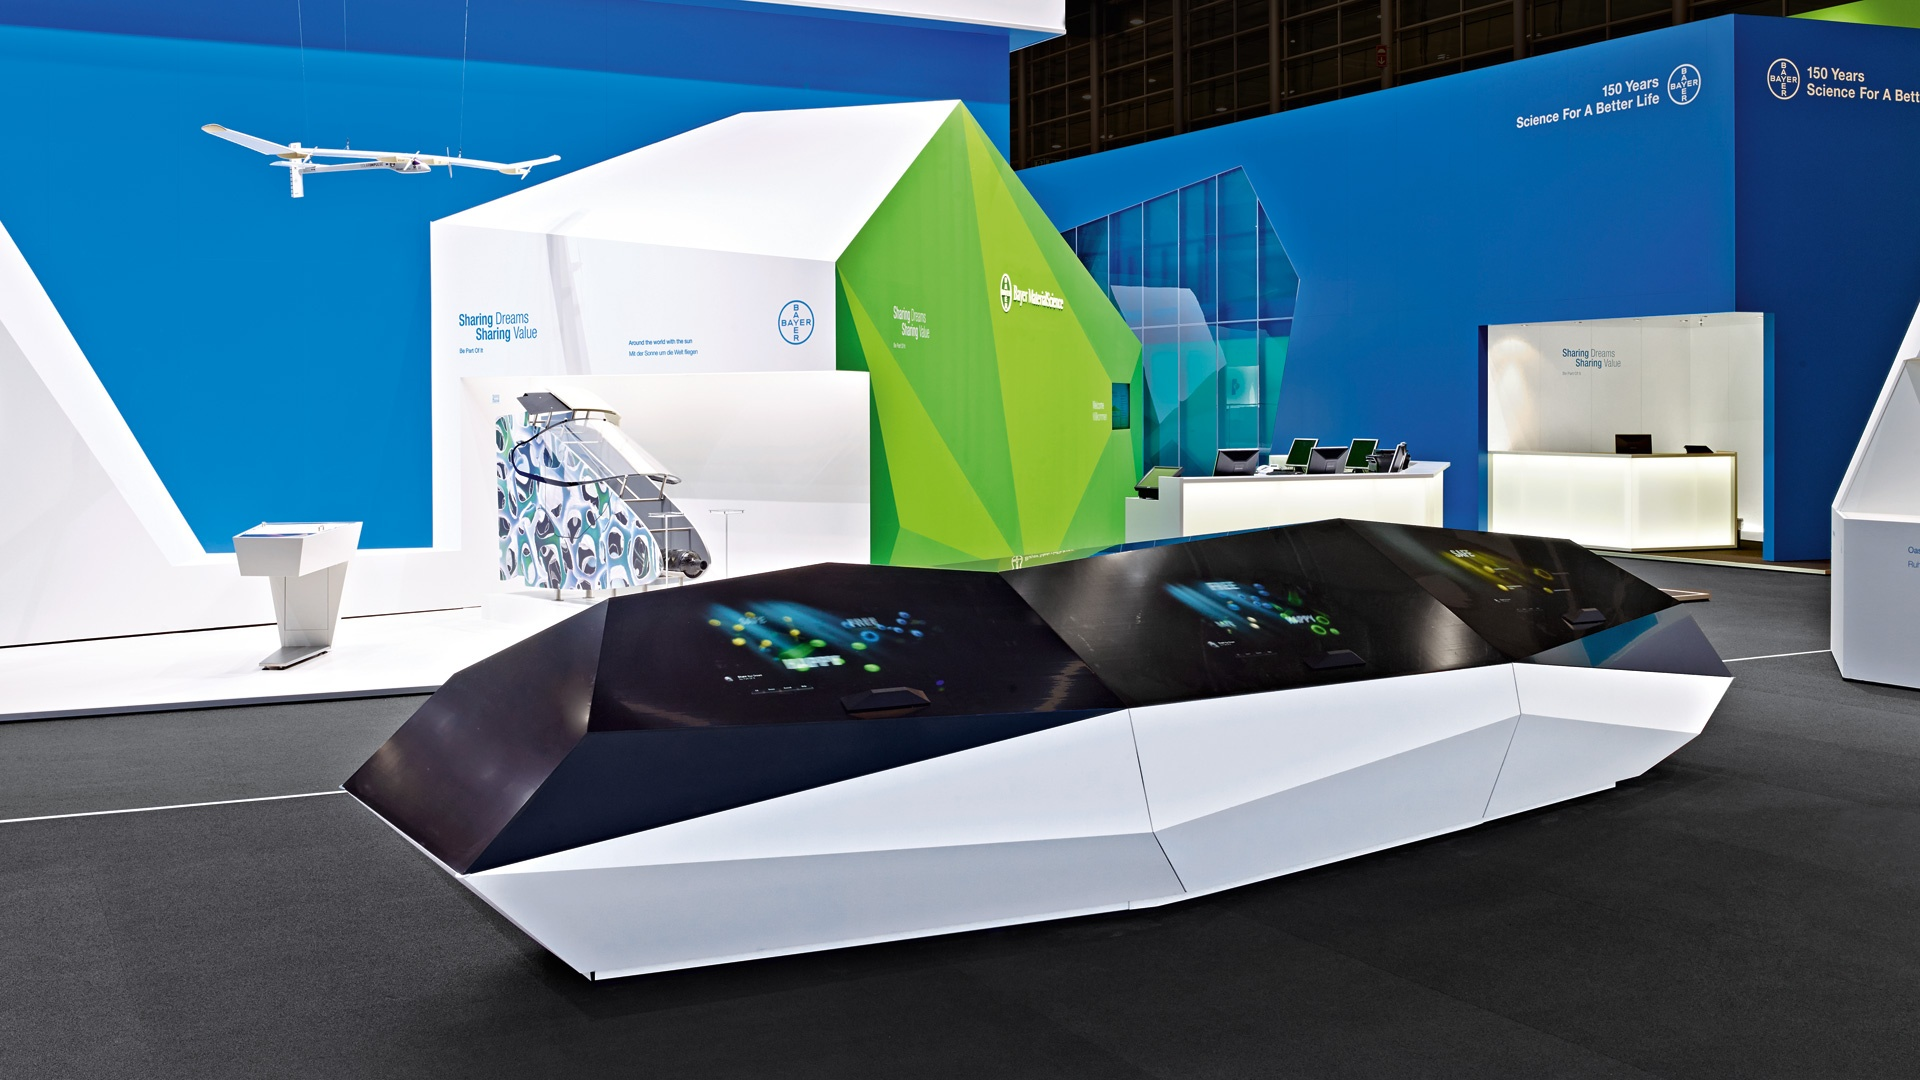 Bayer MaterialScience Messe K Sharing Dreams, Sharing Value